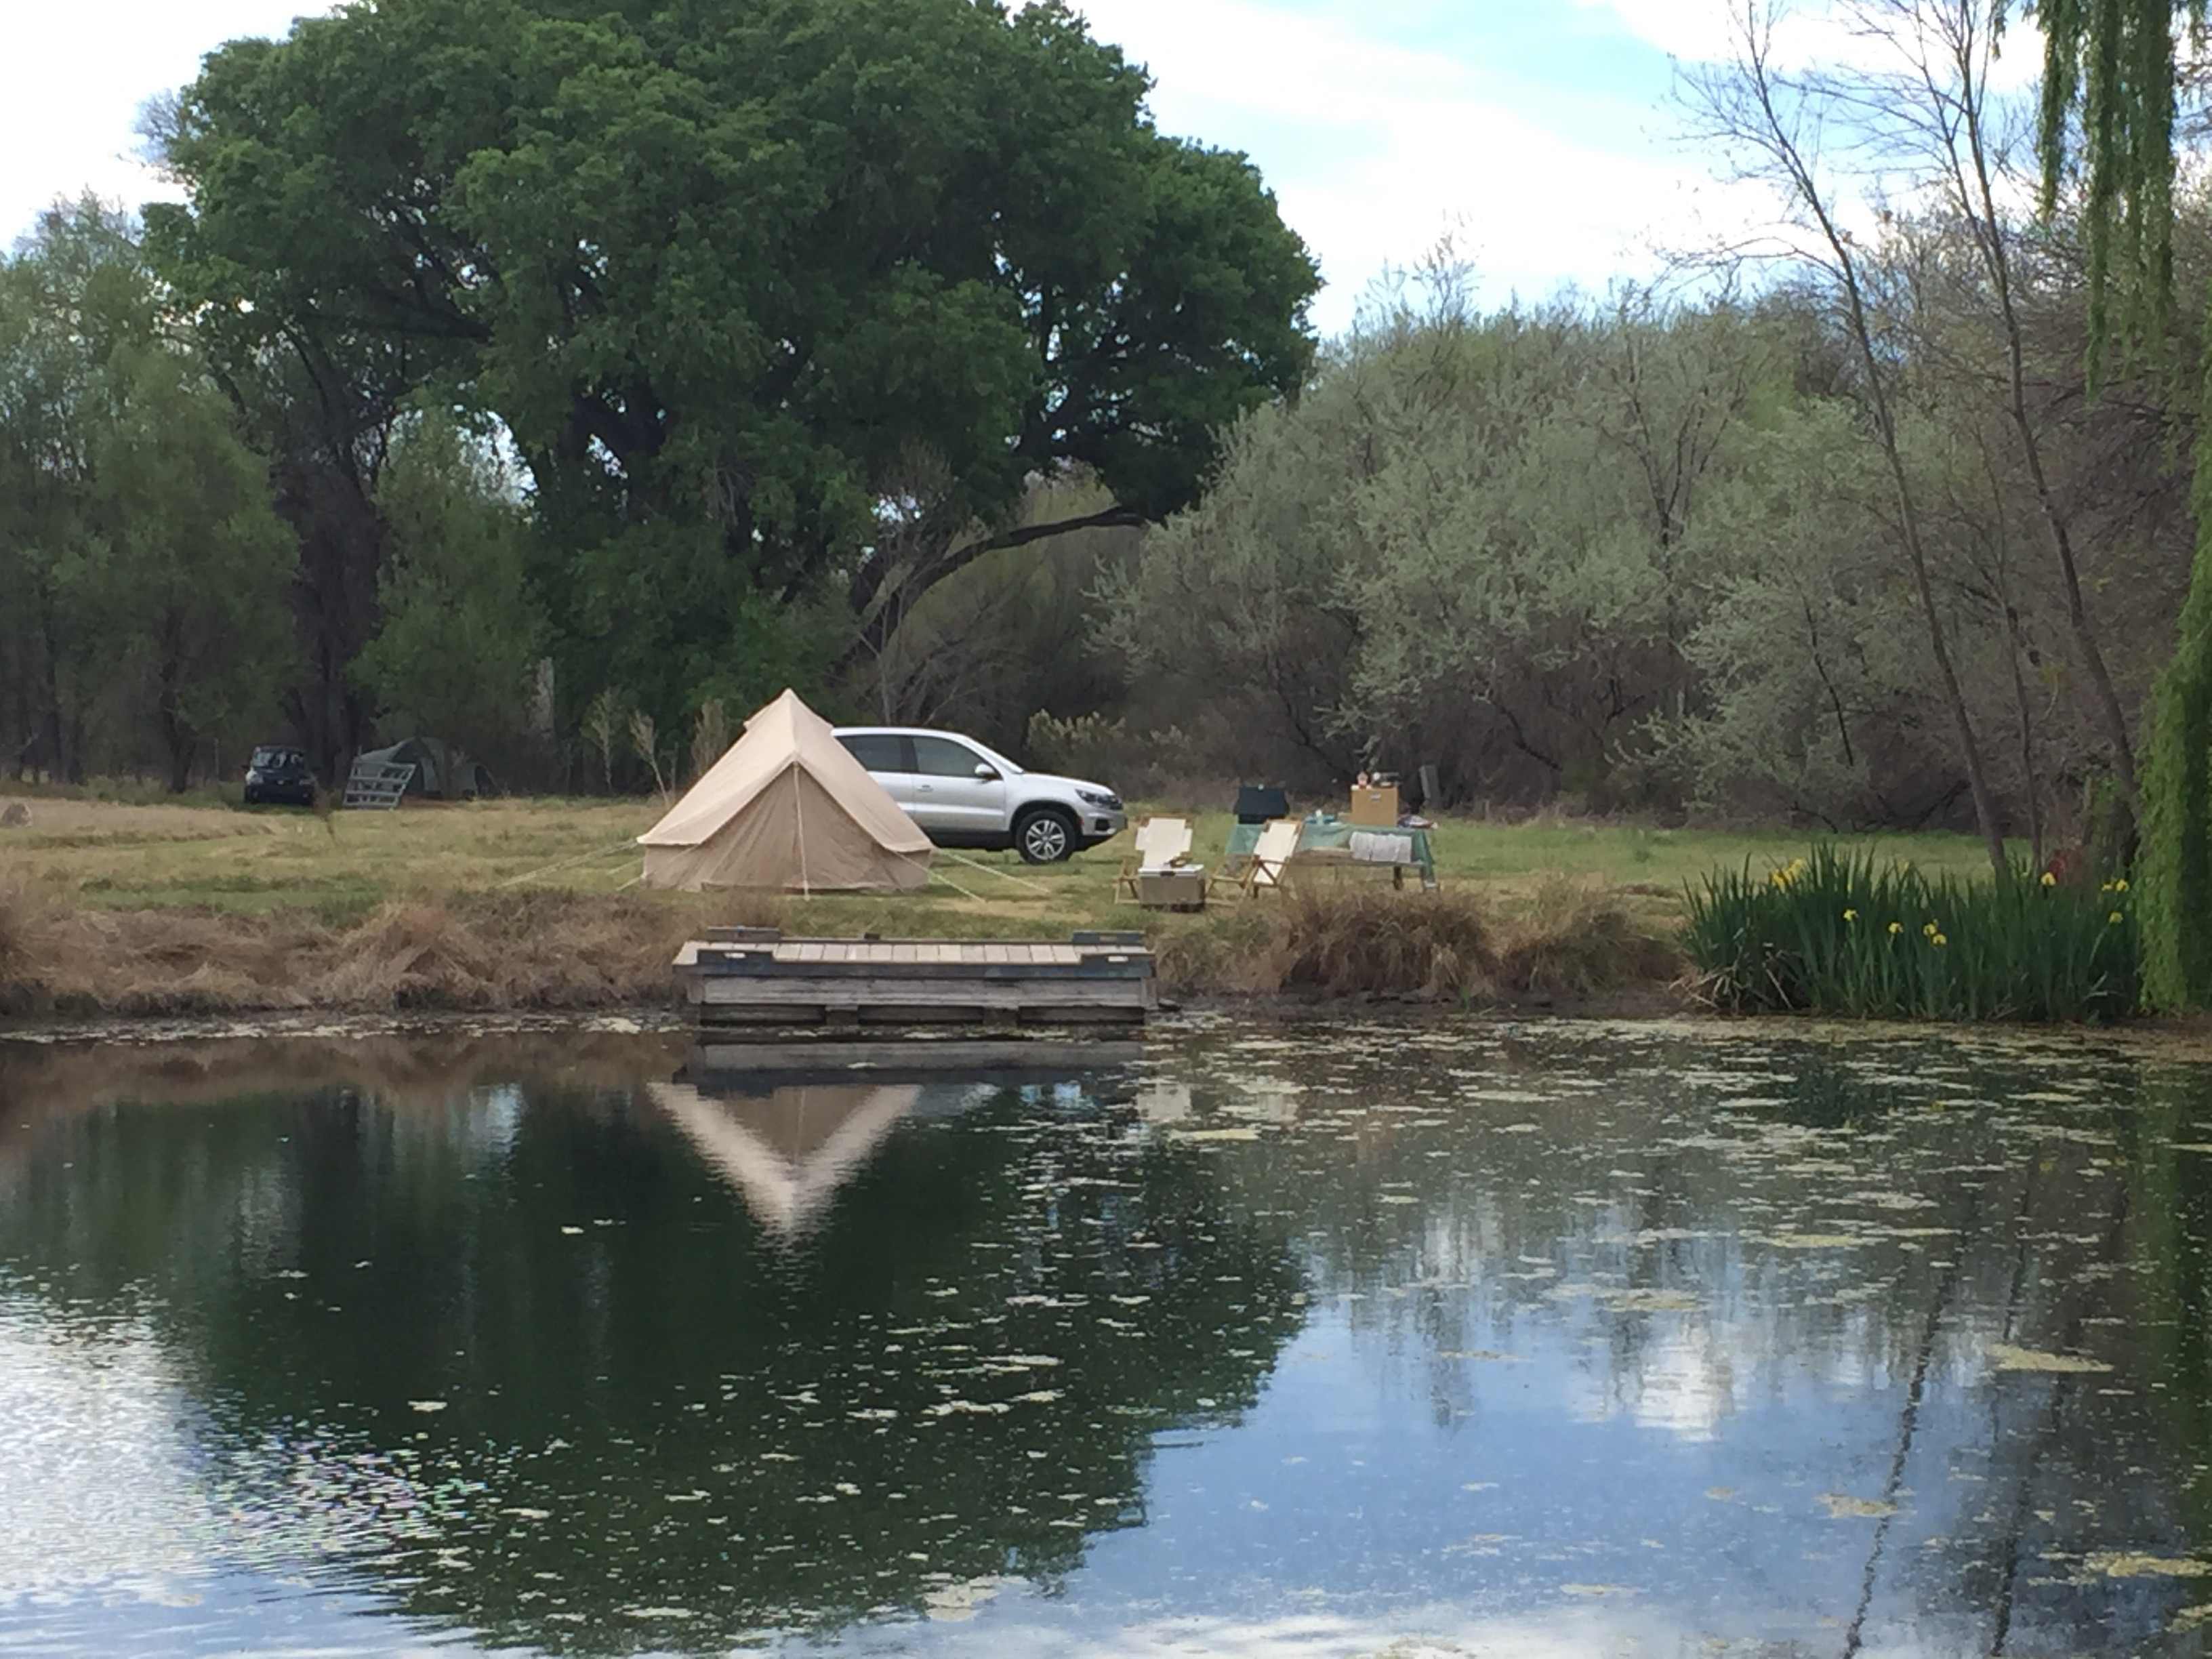 We Have Added Photos The Camping Trip Grand Canyon Flagstaff And Sedona Venturewest Camping